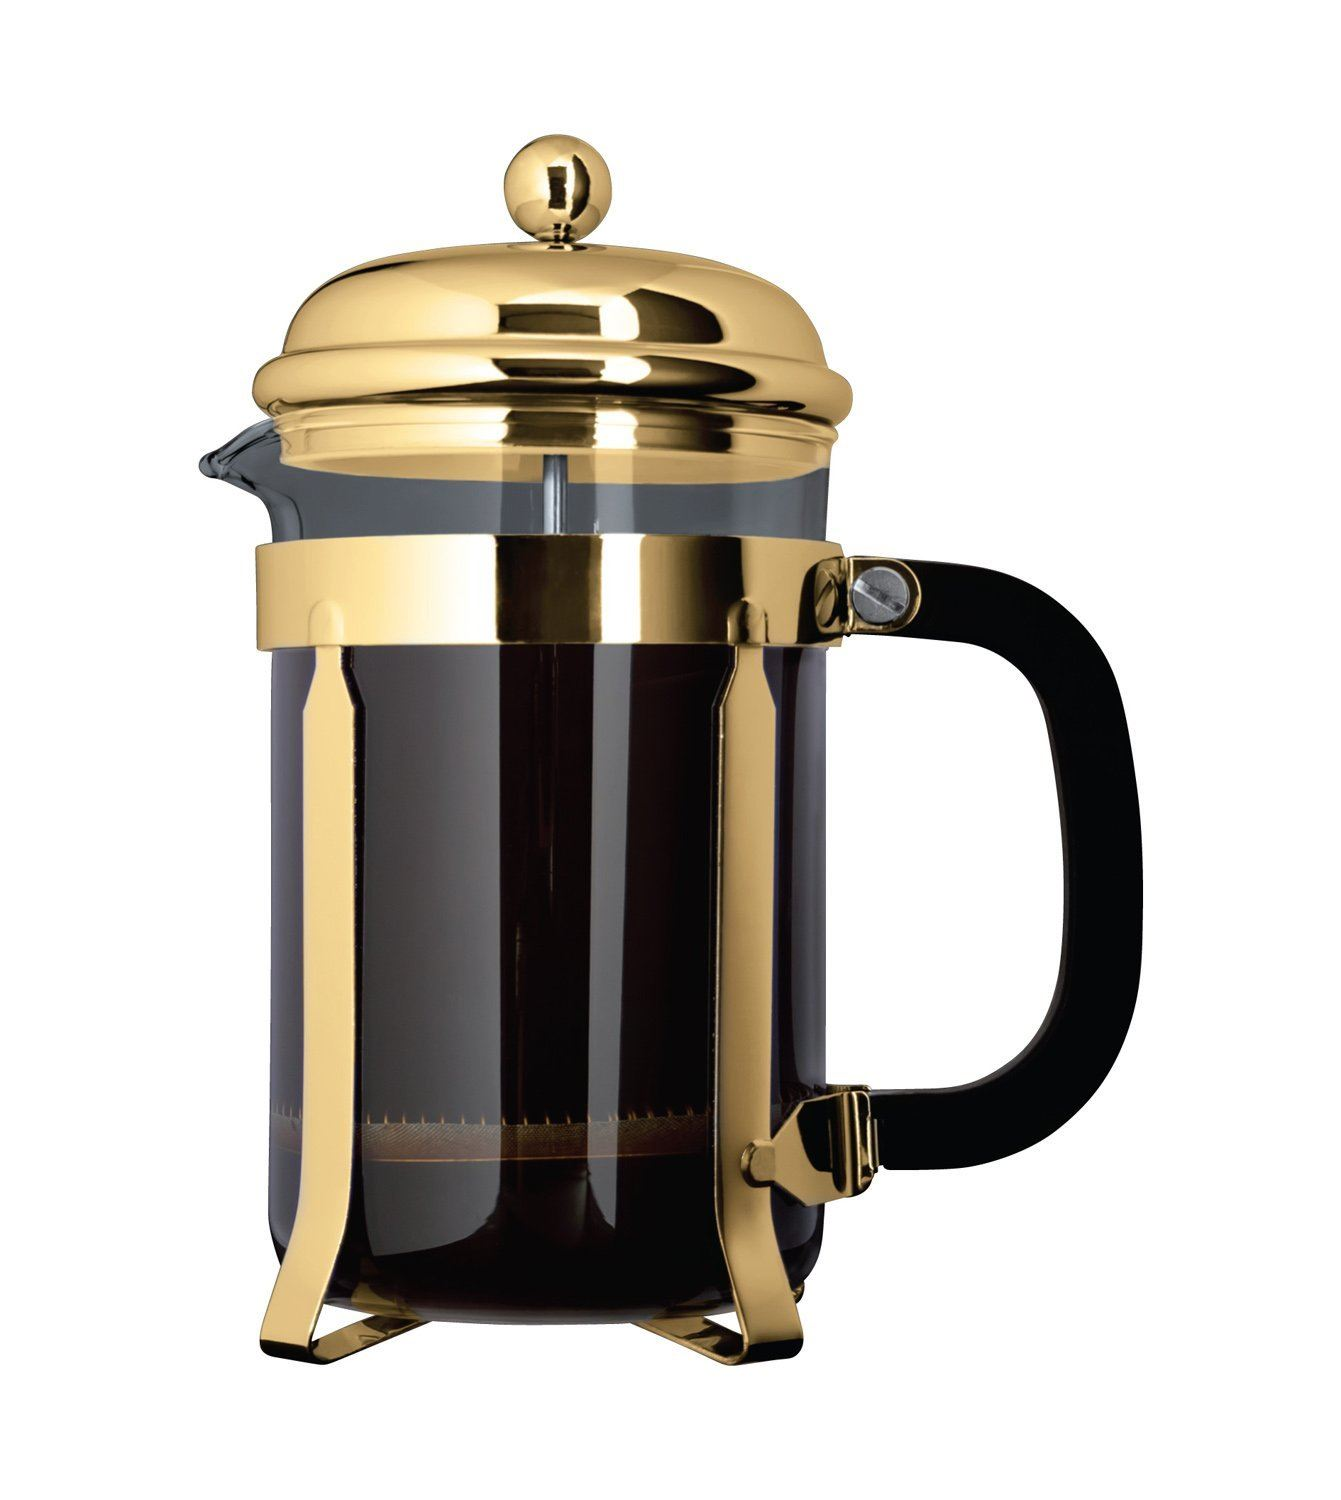 Cafe Ole By Grunwerg 6-cup Classic Coffee Maker Glass Cafetiere, Gold Finish, 800  Ml 0.8 Litre